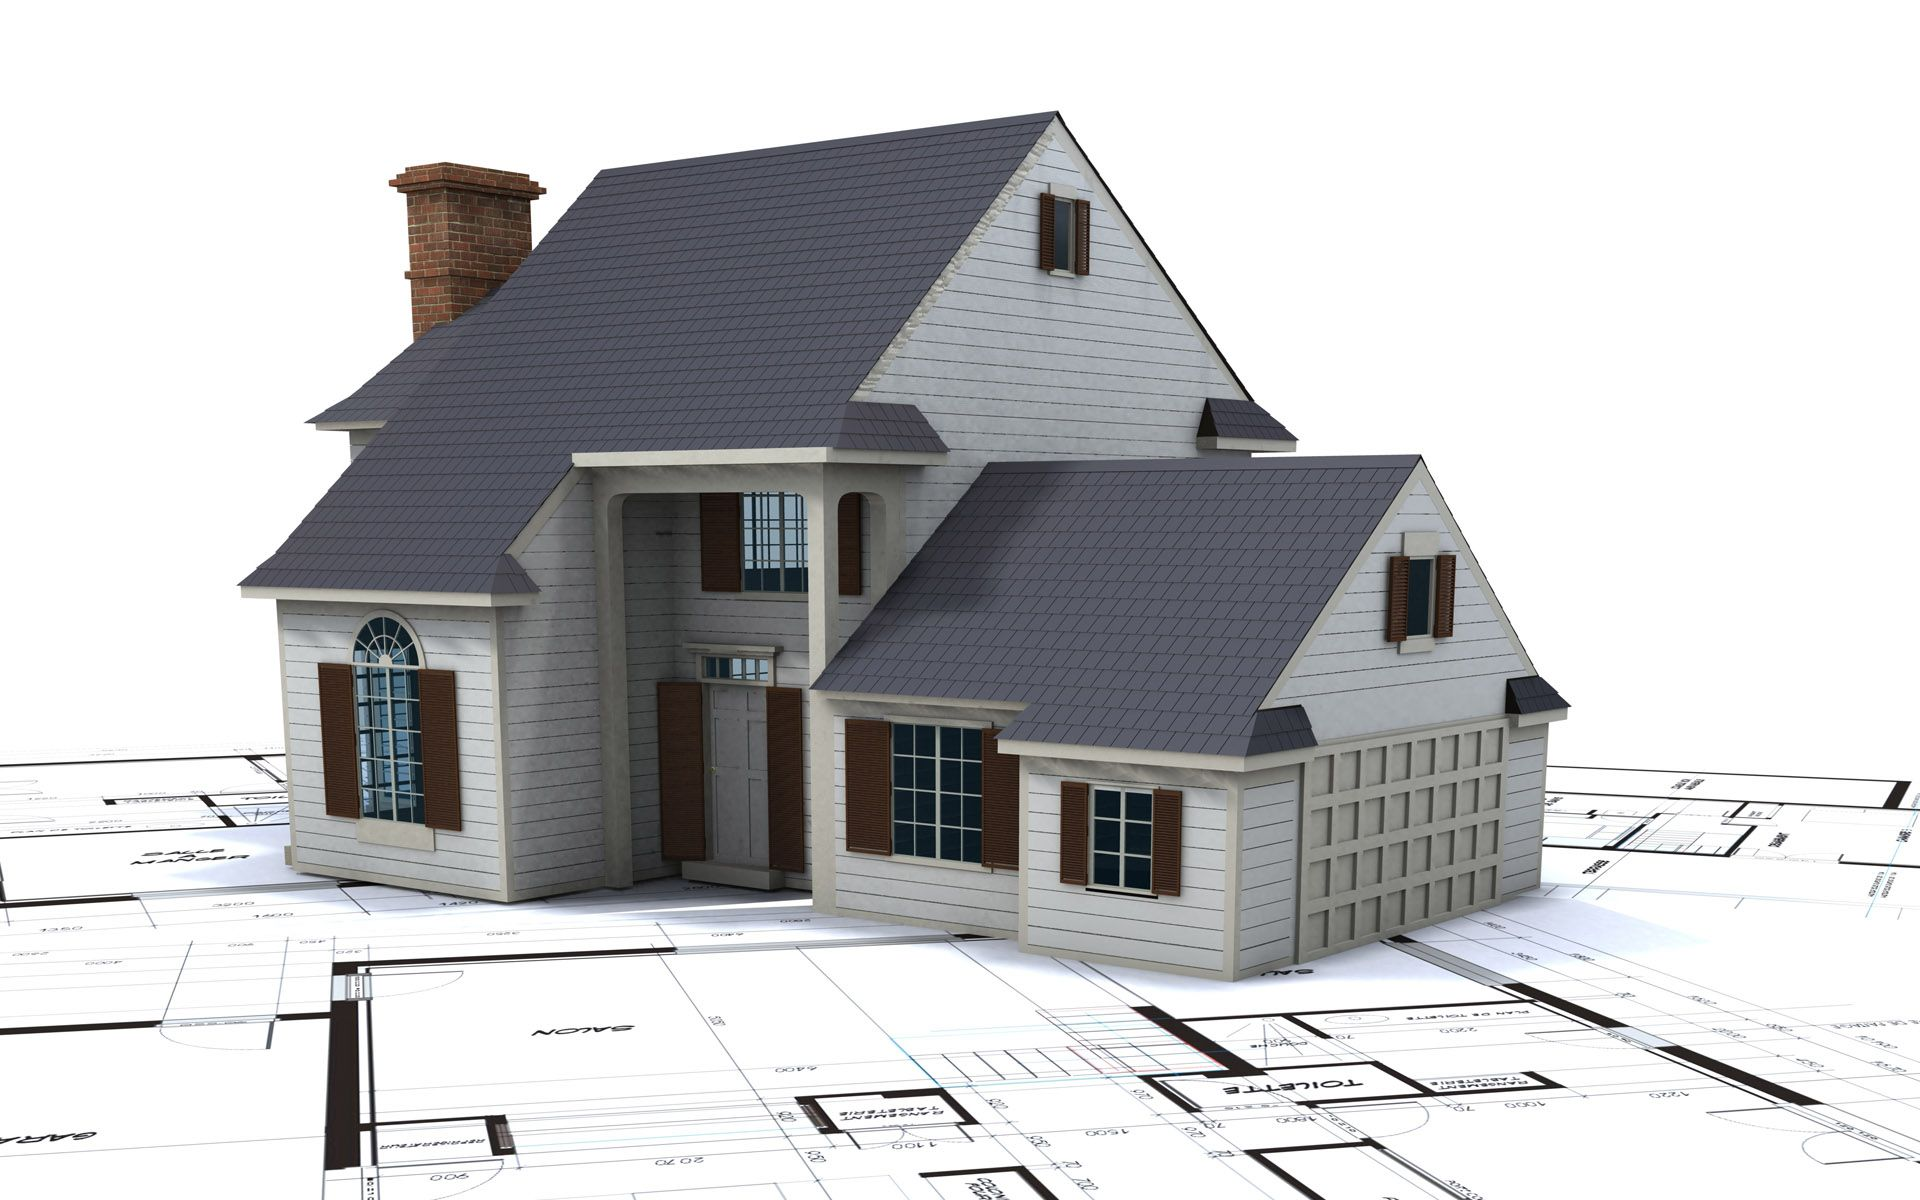 House Building Design Wallpaper | Stuff to Buy | Pinterest ...